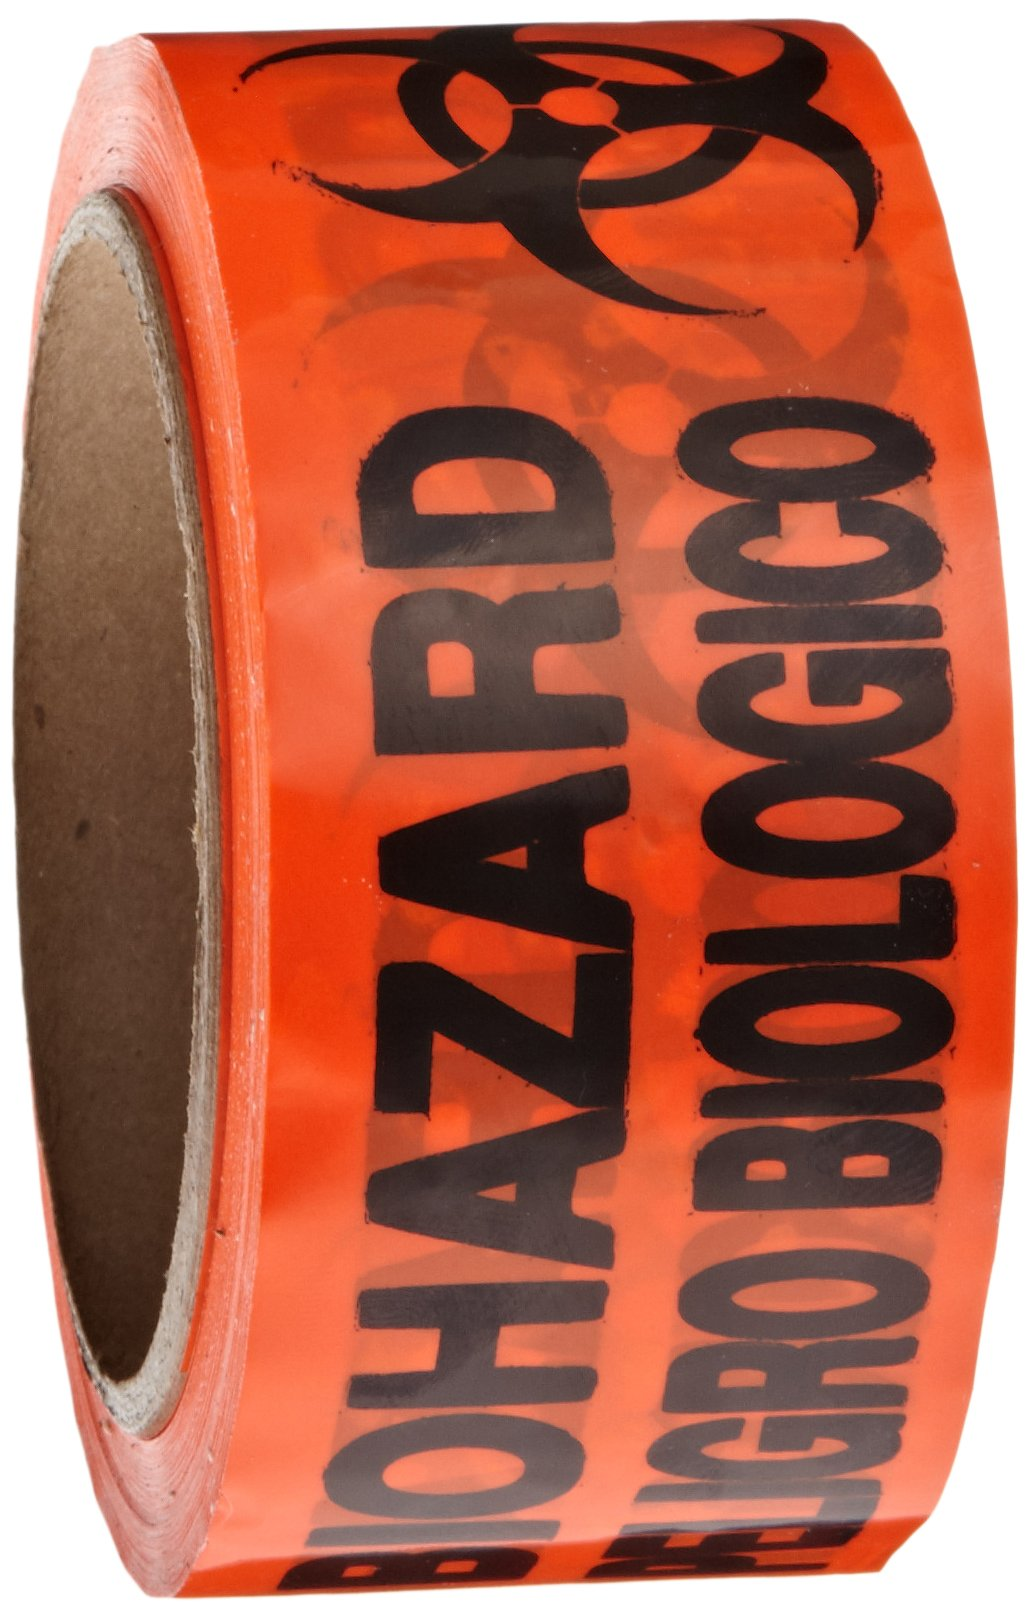 Roll Products 142-0006 PVC Film Biohazard Warning Tape with Black Imprint, Legend ''Biohazard - Peligro Biologico'' (with Logo), 55 yd. Length x 2'' Width, 3'' Diameter Core Roll, for Identifying and Marking, Fluorescent Red/Orange by Roll Products